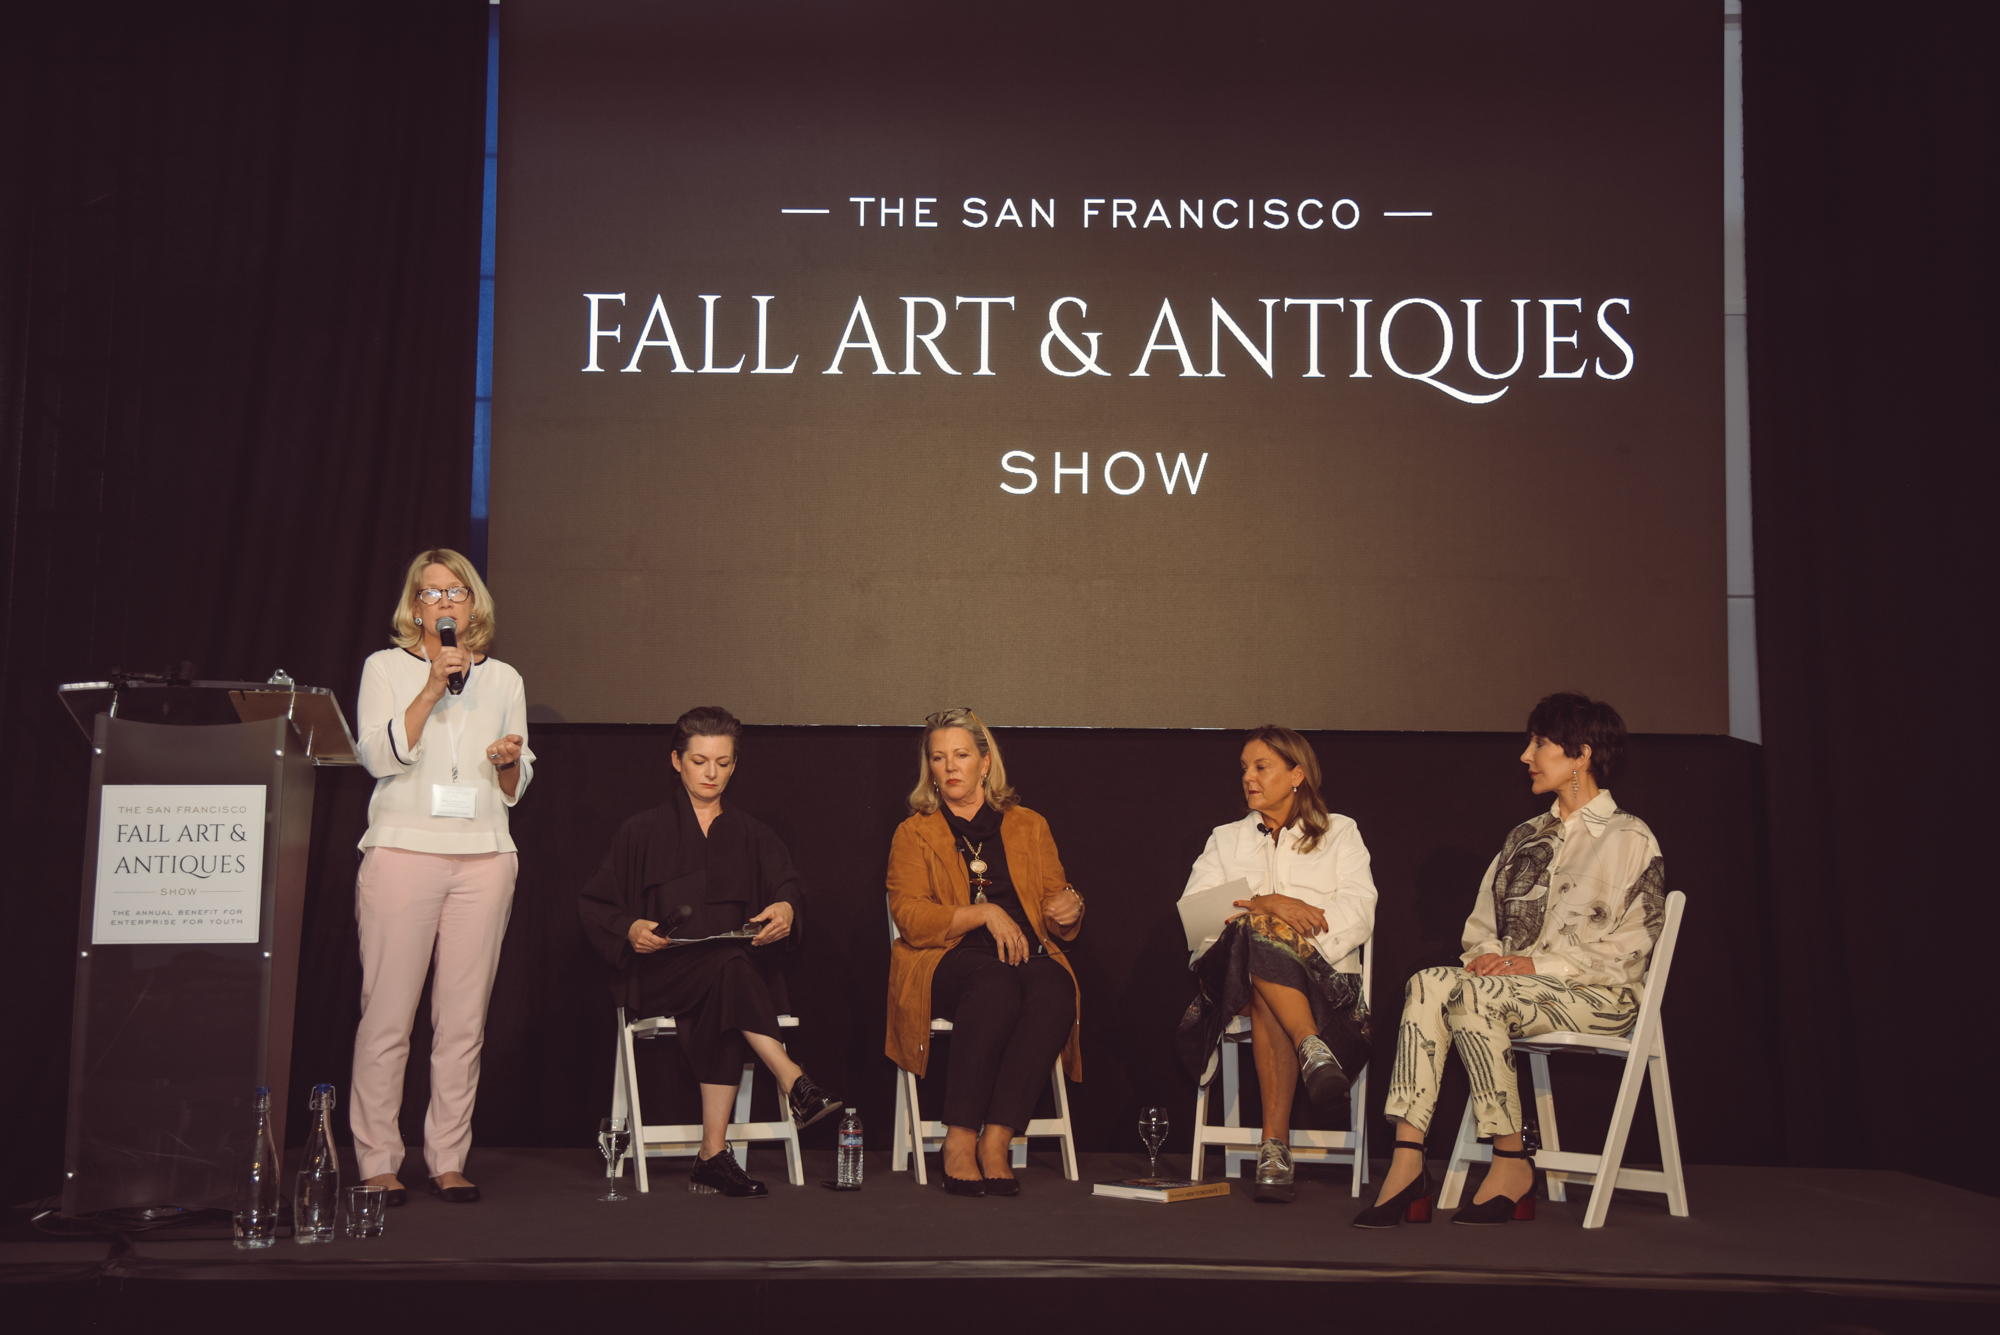 The Director of The San Francisco Fall Art & Antiques Show, Ariane Trimuschat, introduced the esteemed panelists and moderator.